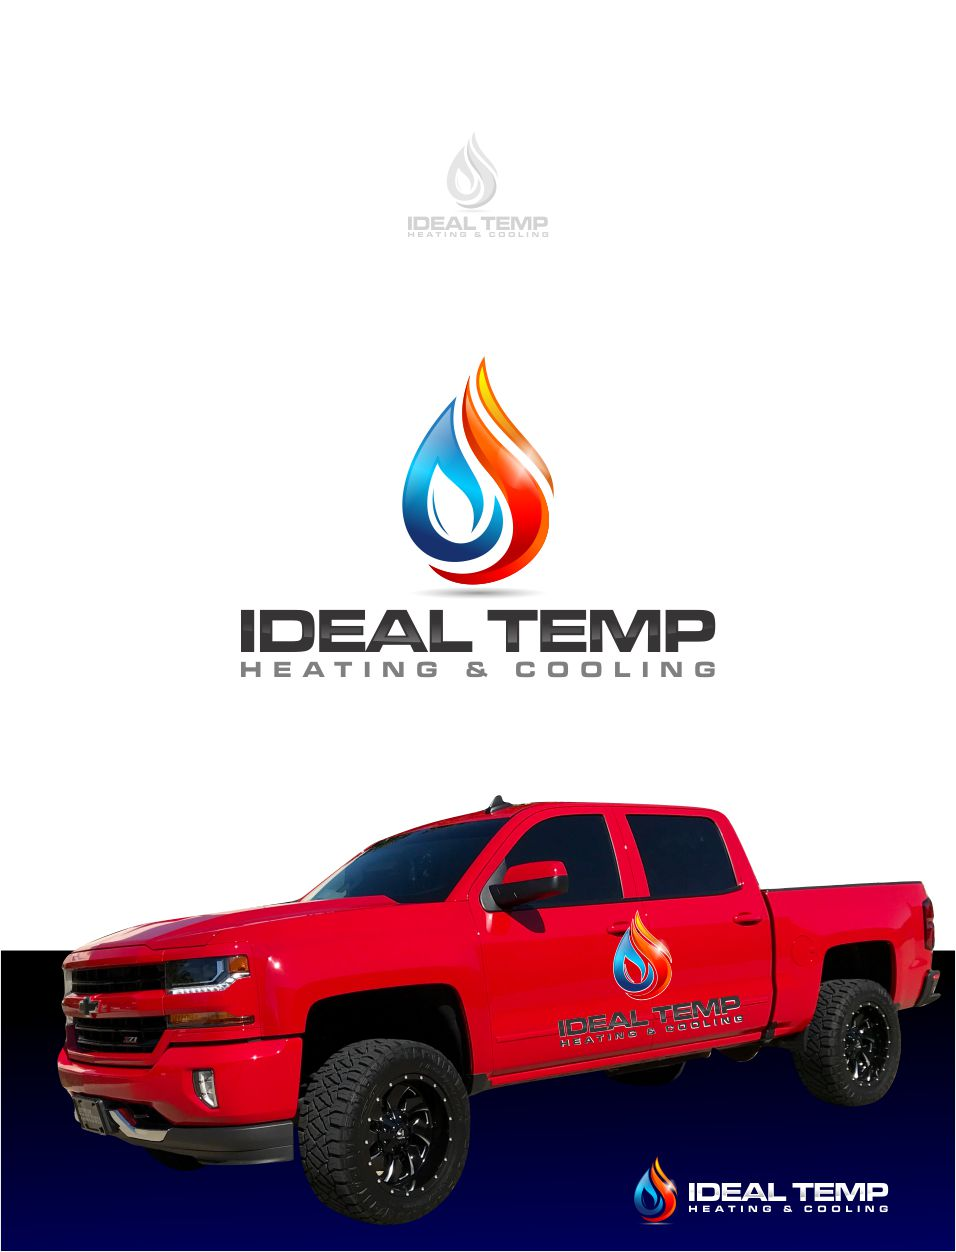 Logo Design by Raymond Garcia - Entry No. 1 in the Logo Design Contest Captivating Logo Design for Ideal Temp.